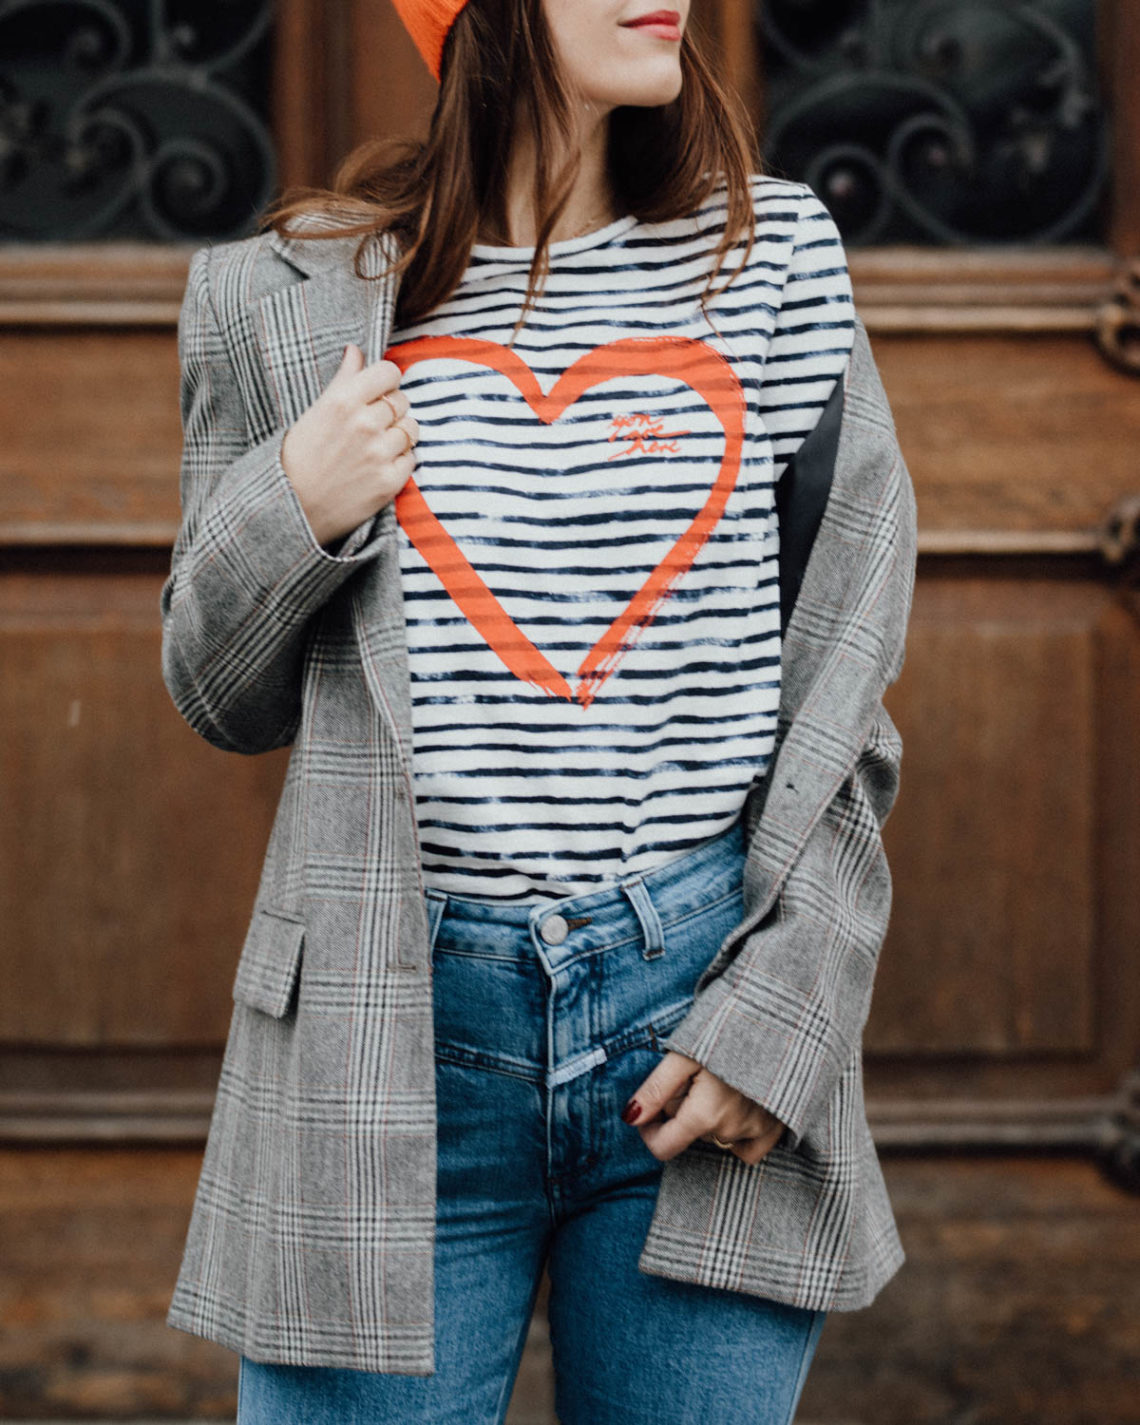 Outfit: Valentine's Day - You Rock My Life